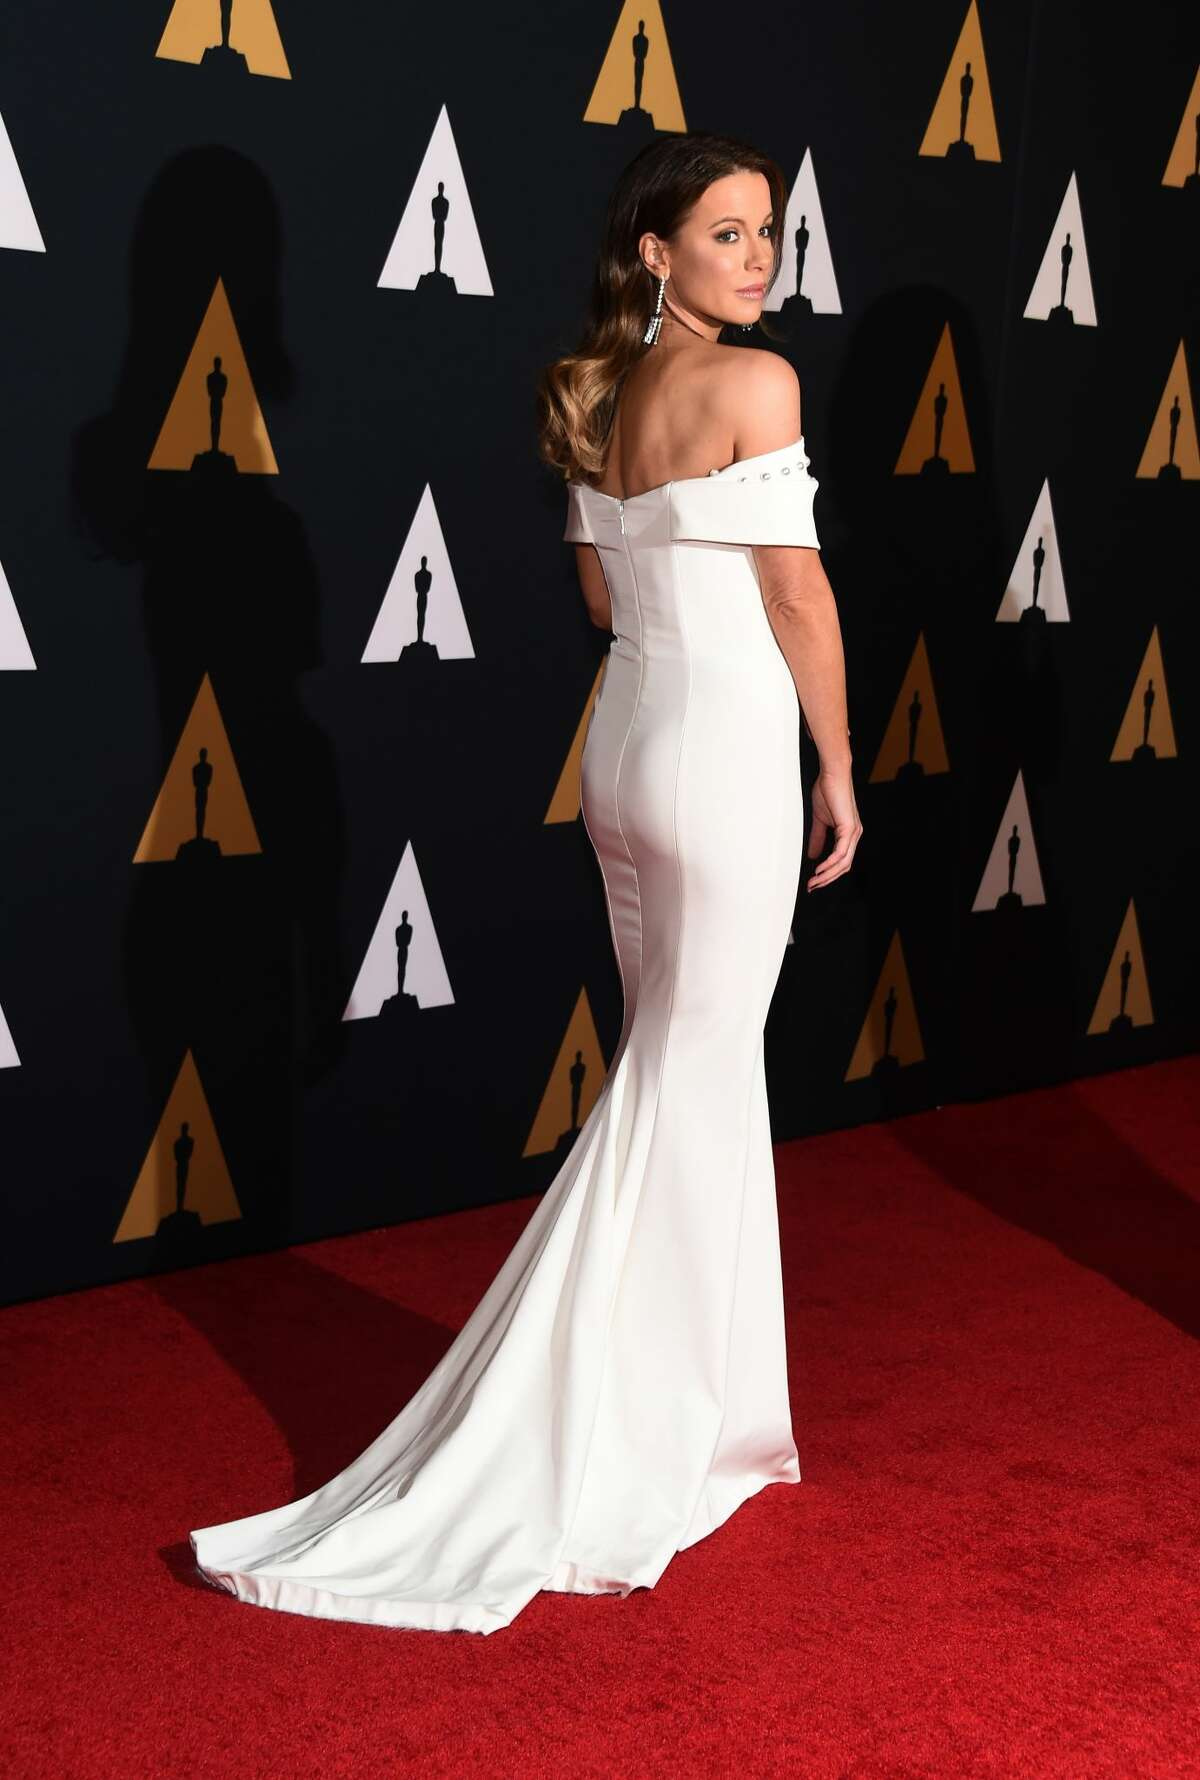 THE VAGUELY BRIDAL:  We'll start with the vaguely bridal trend. Kate Beckinsale showed up in this off-the shoulder gown we swear we've seen a bride wearing.